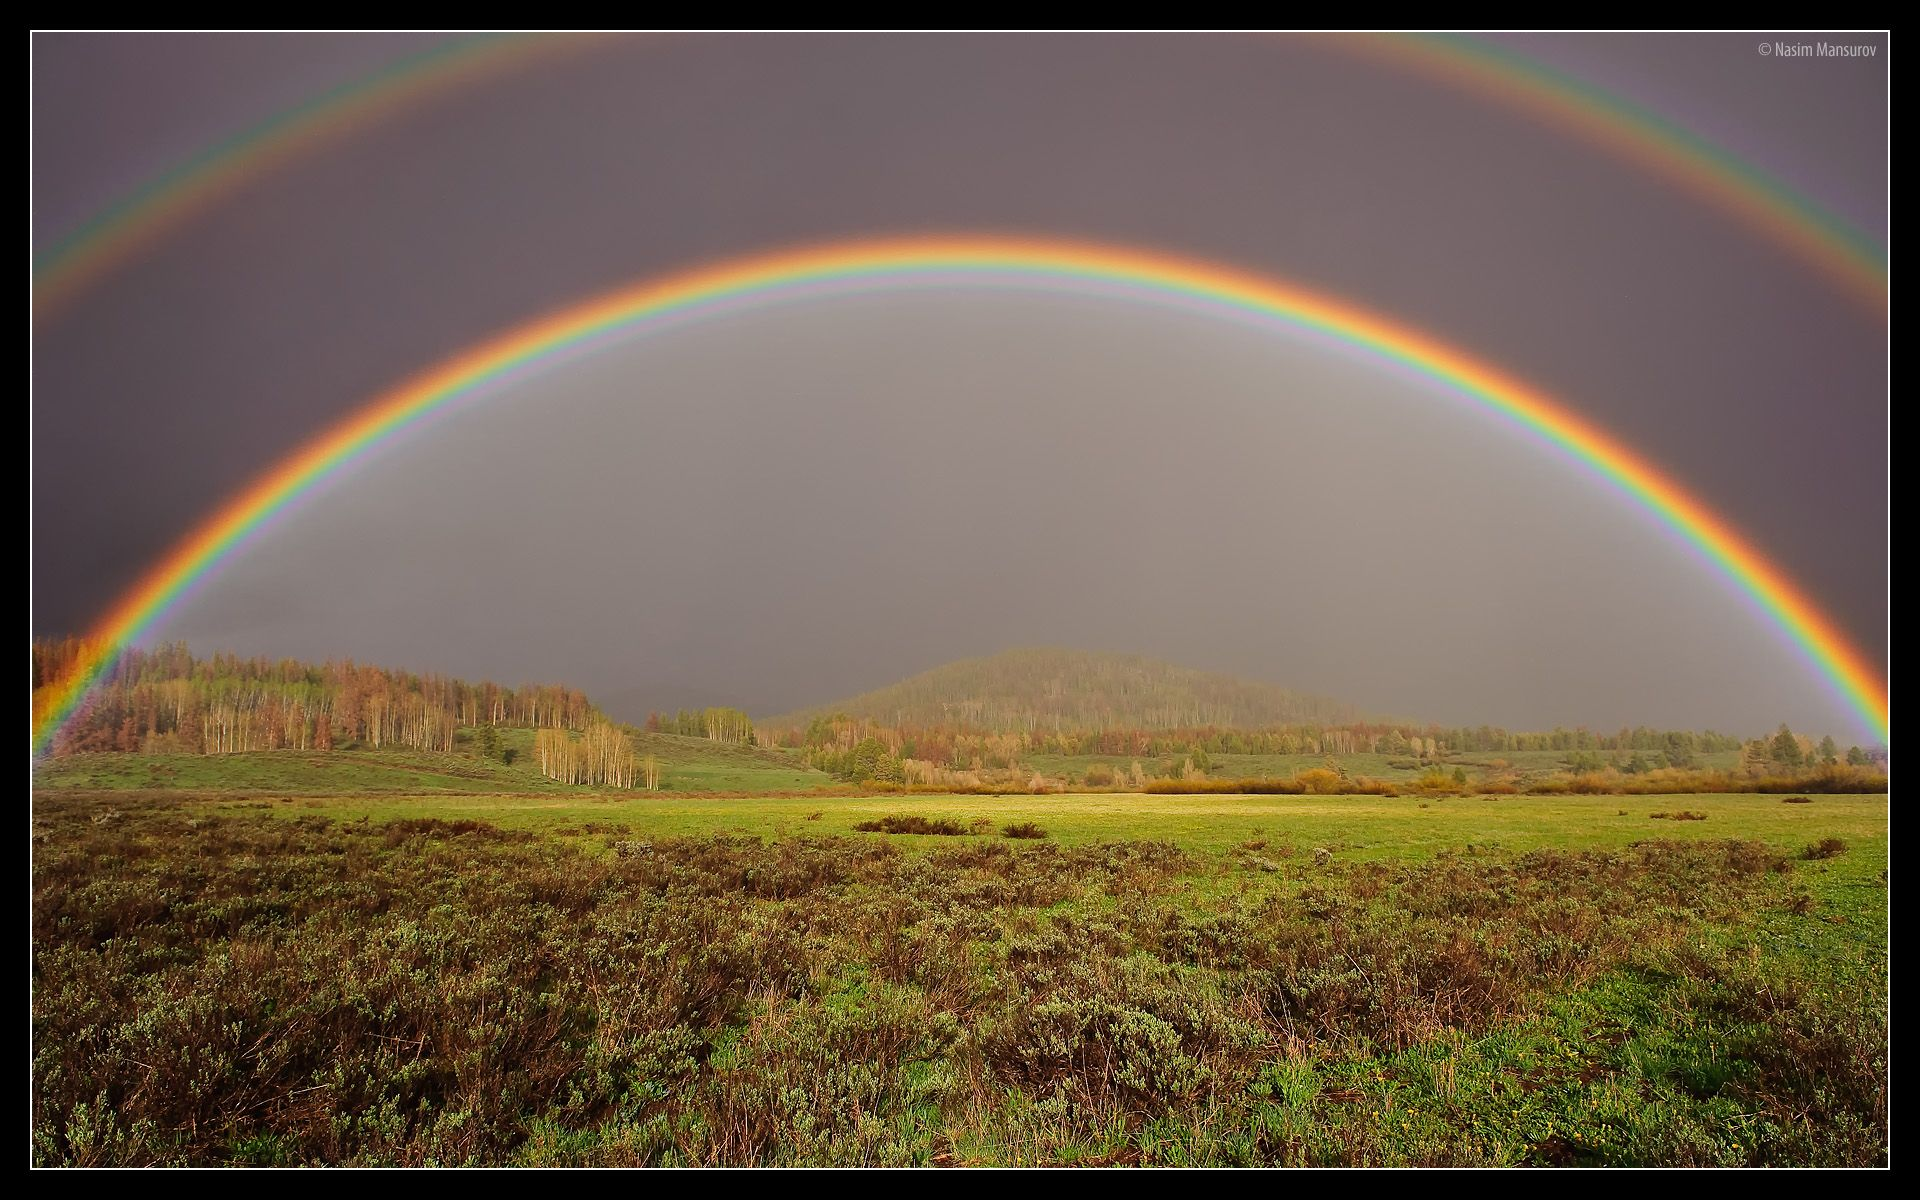 Real Rainbows Rainbows 4 Stevie Rainbow Photo Cool Pictures